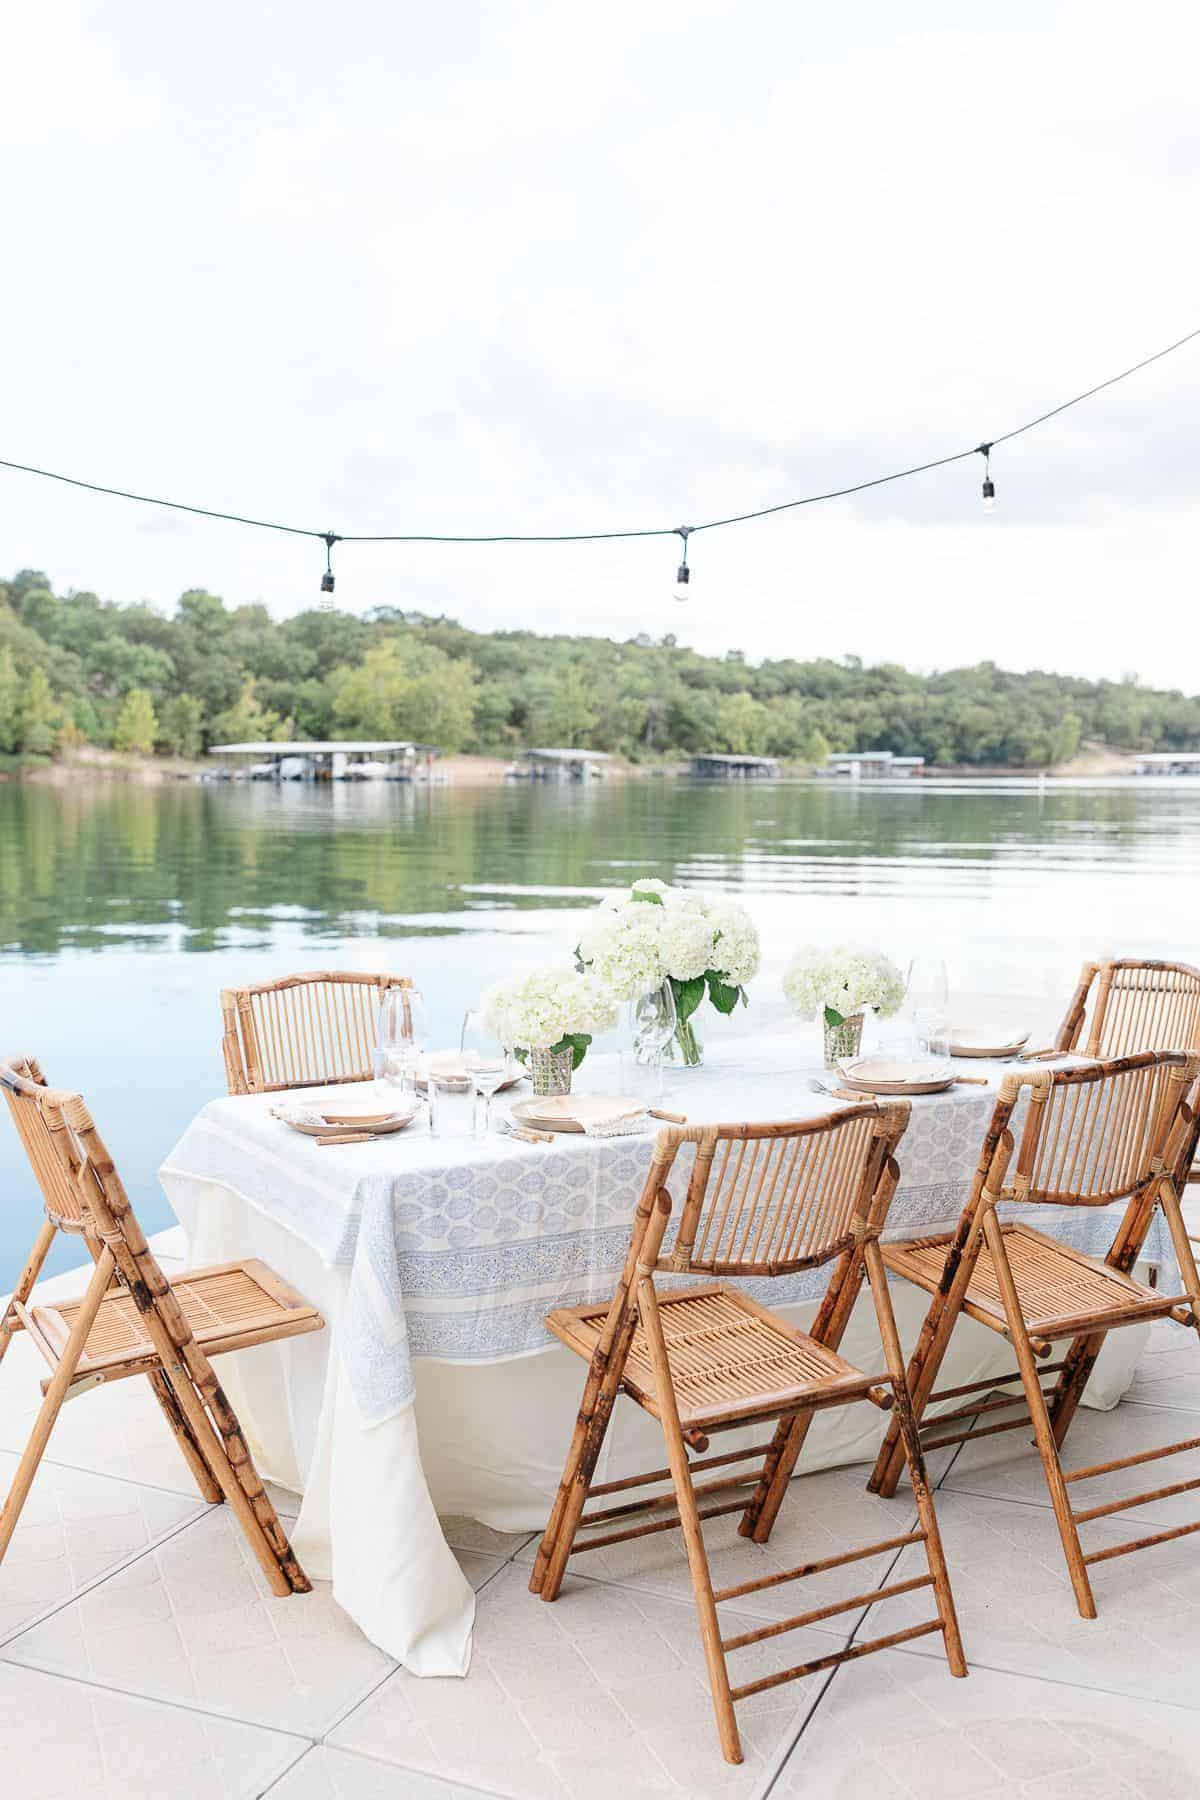 An al fresco dining table set with white flowers and a blue and white table cloth, water in the background.